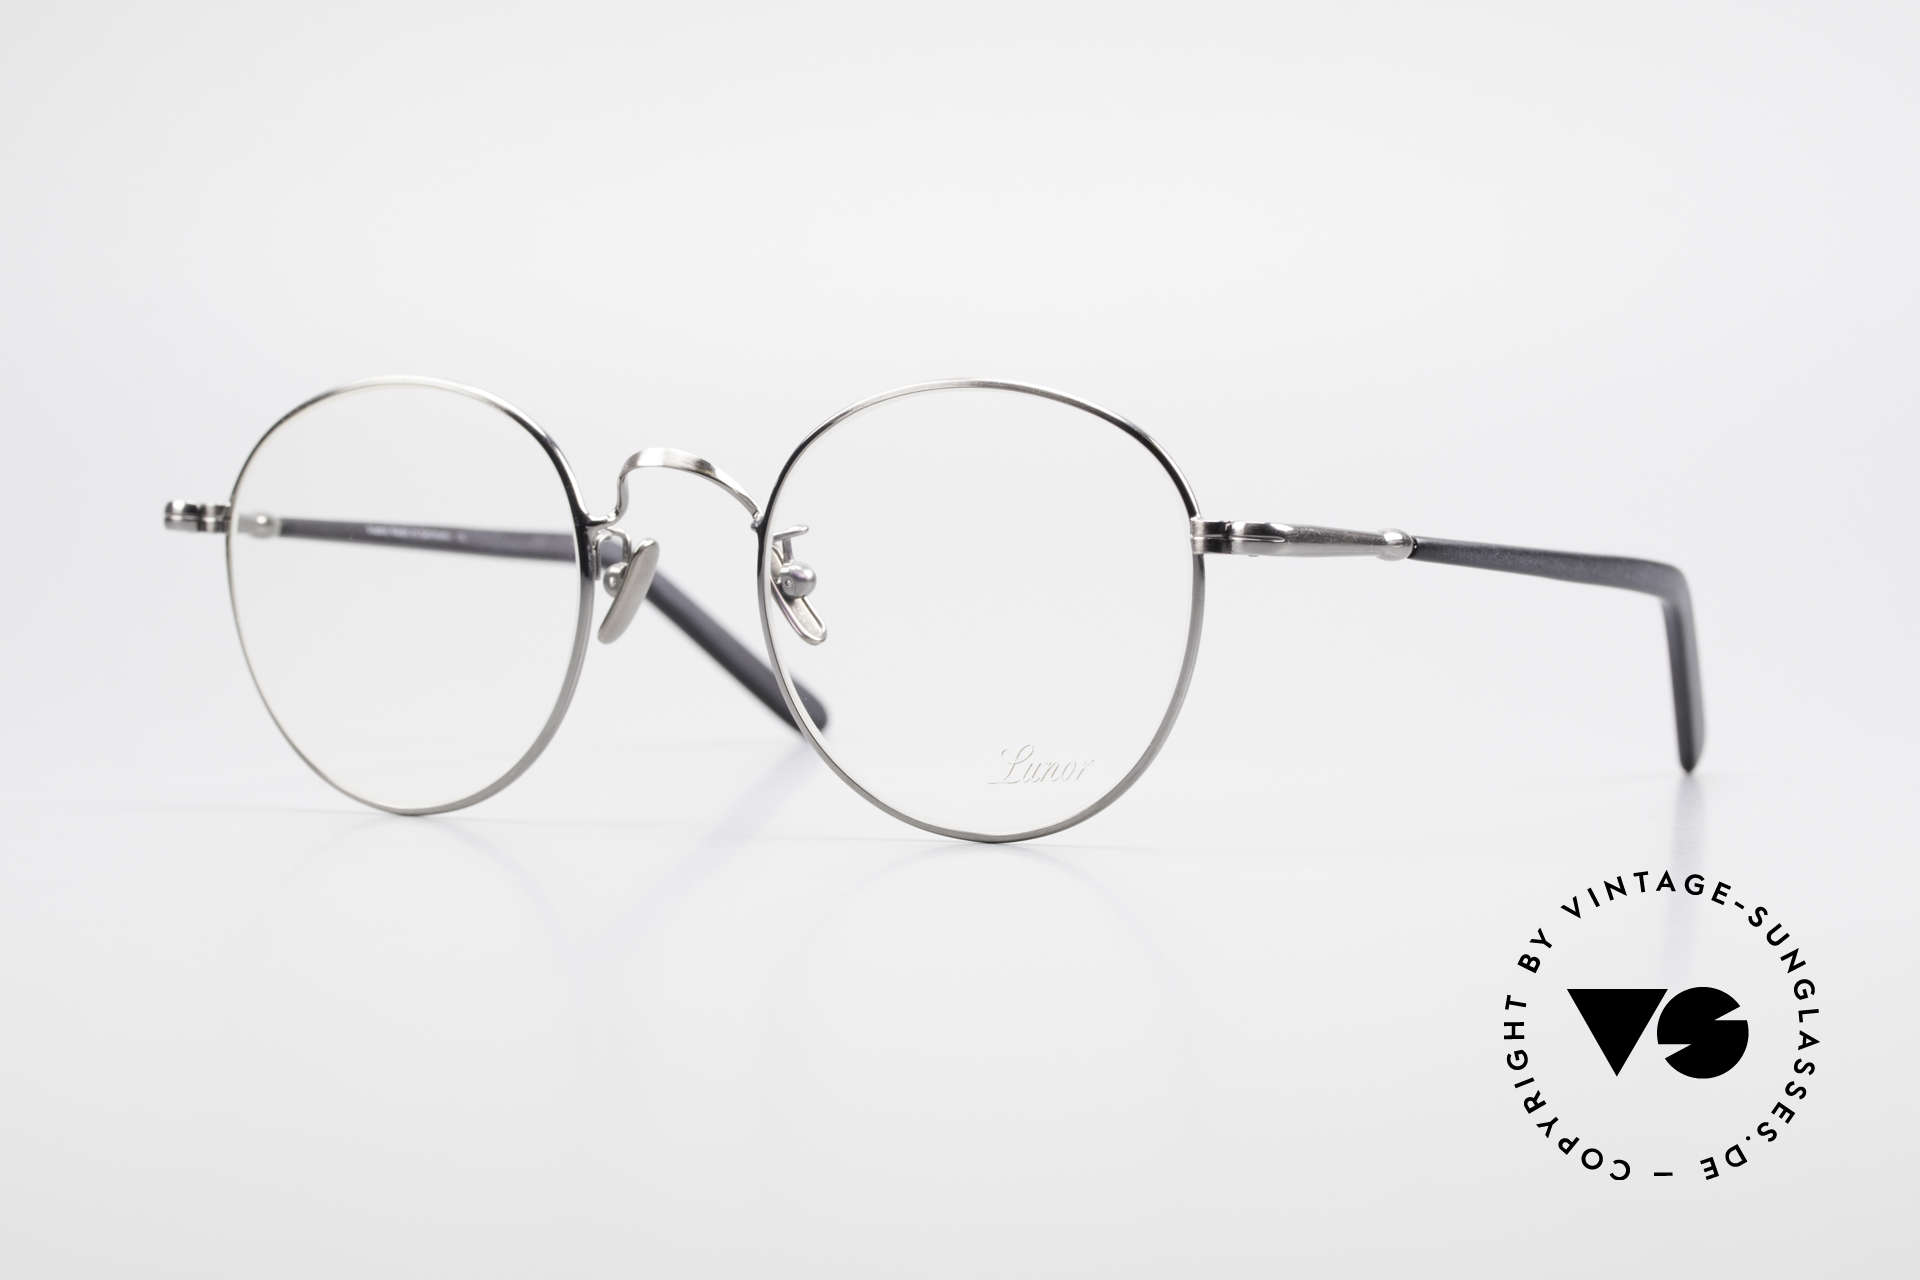 Lunor VA 111 Classy Panto Eyeglasses 2015, LUNOR: honest craftsmanship with attention to details, Made for Men